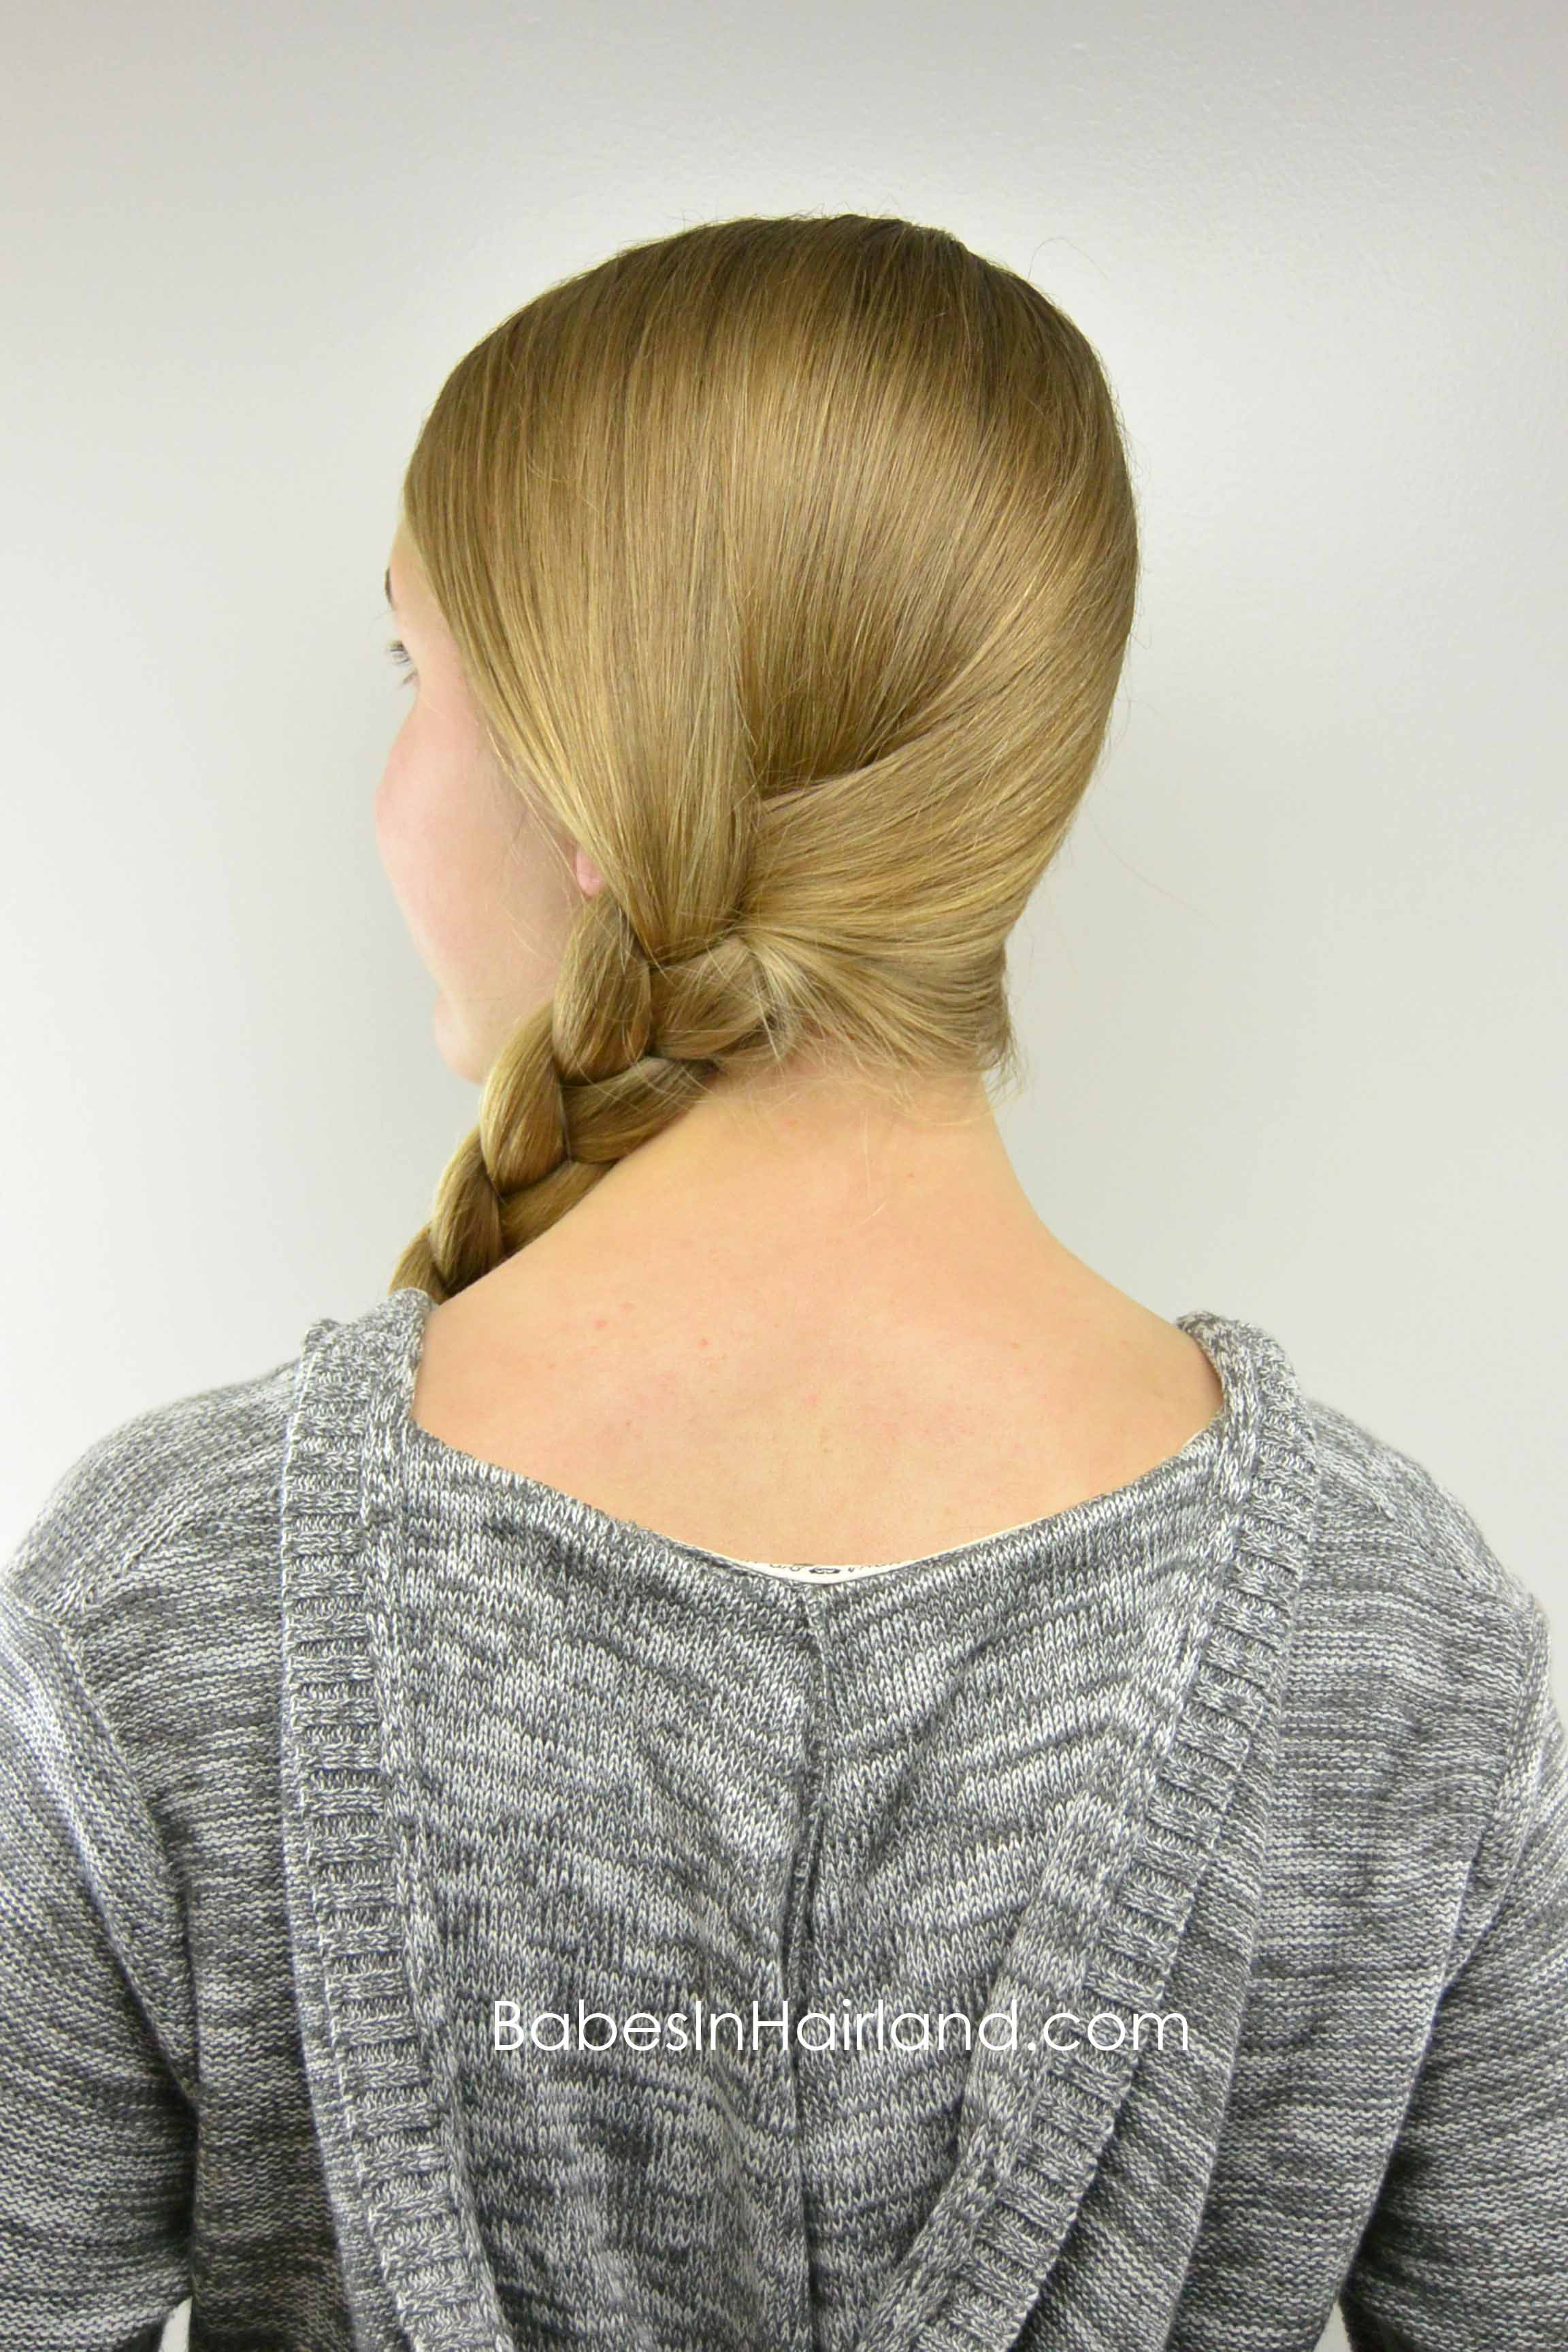 Easy Amp Edgy Braided Style Teen Style Babes In Hairland